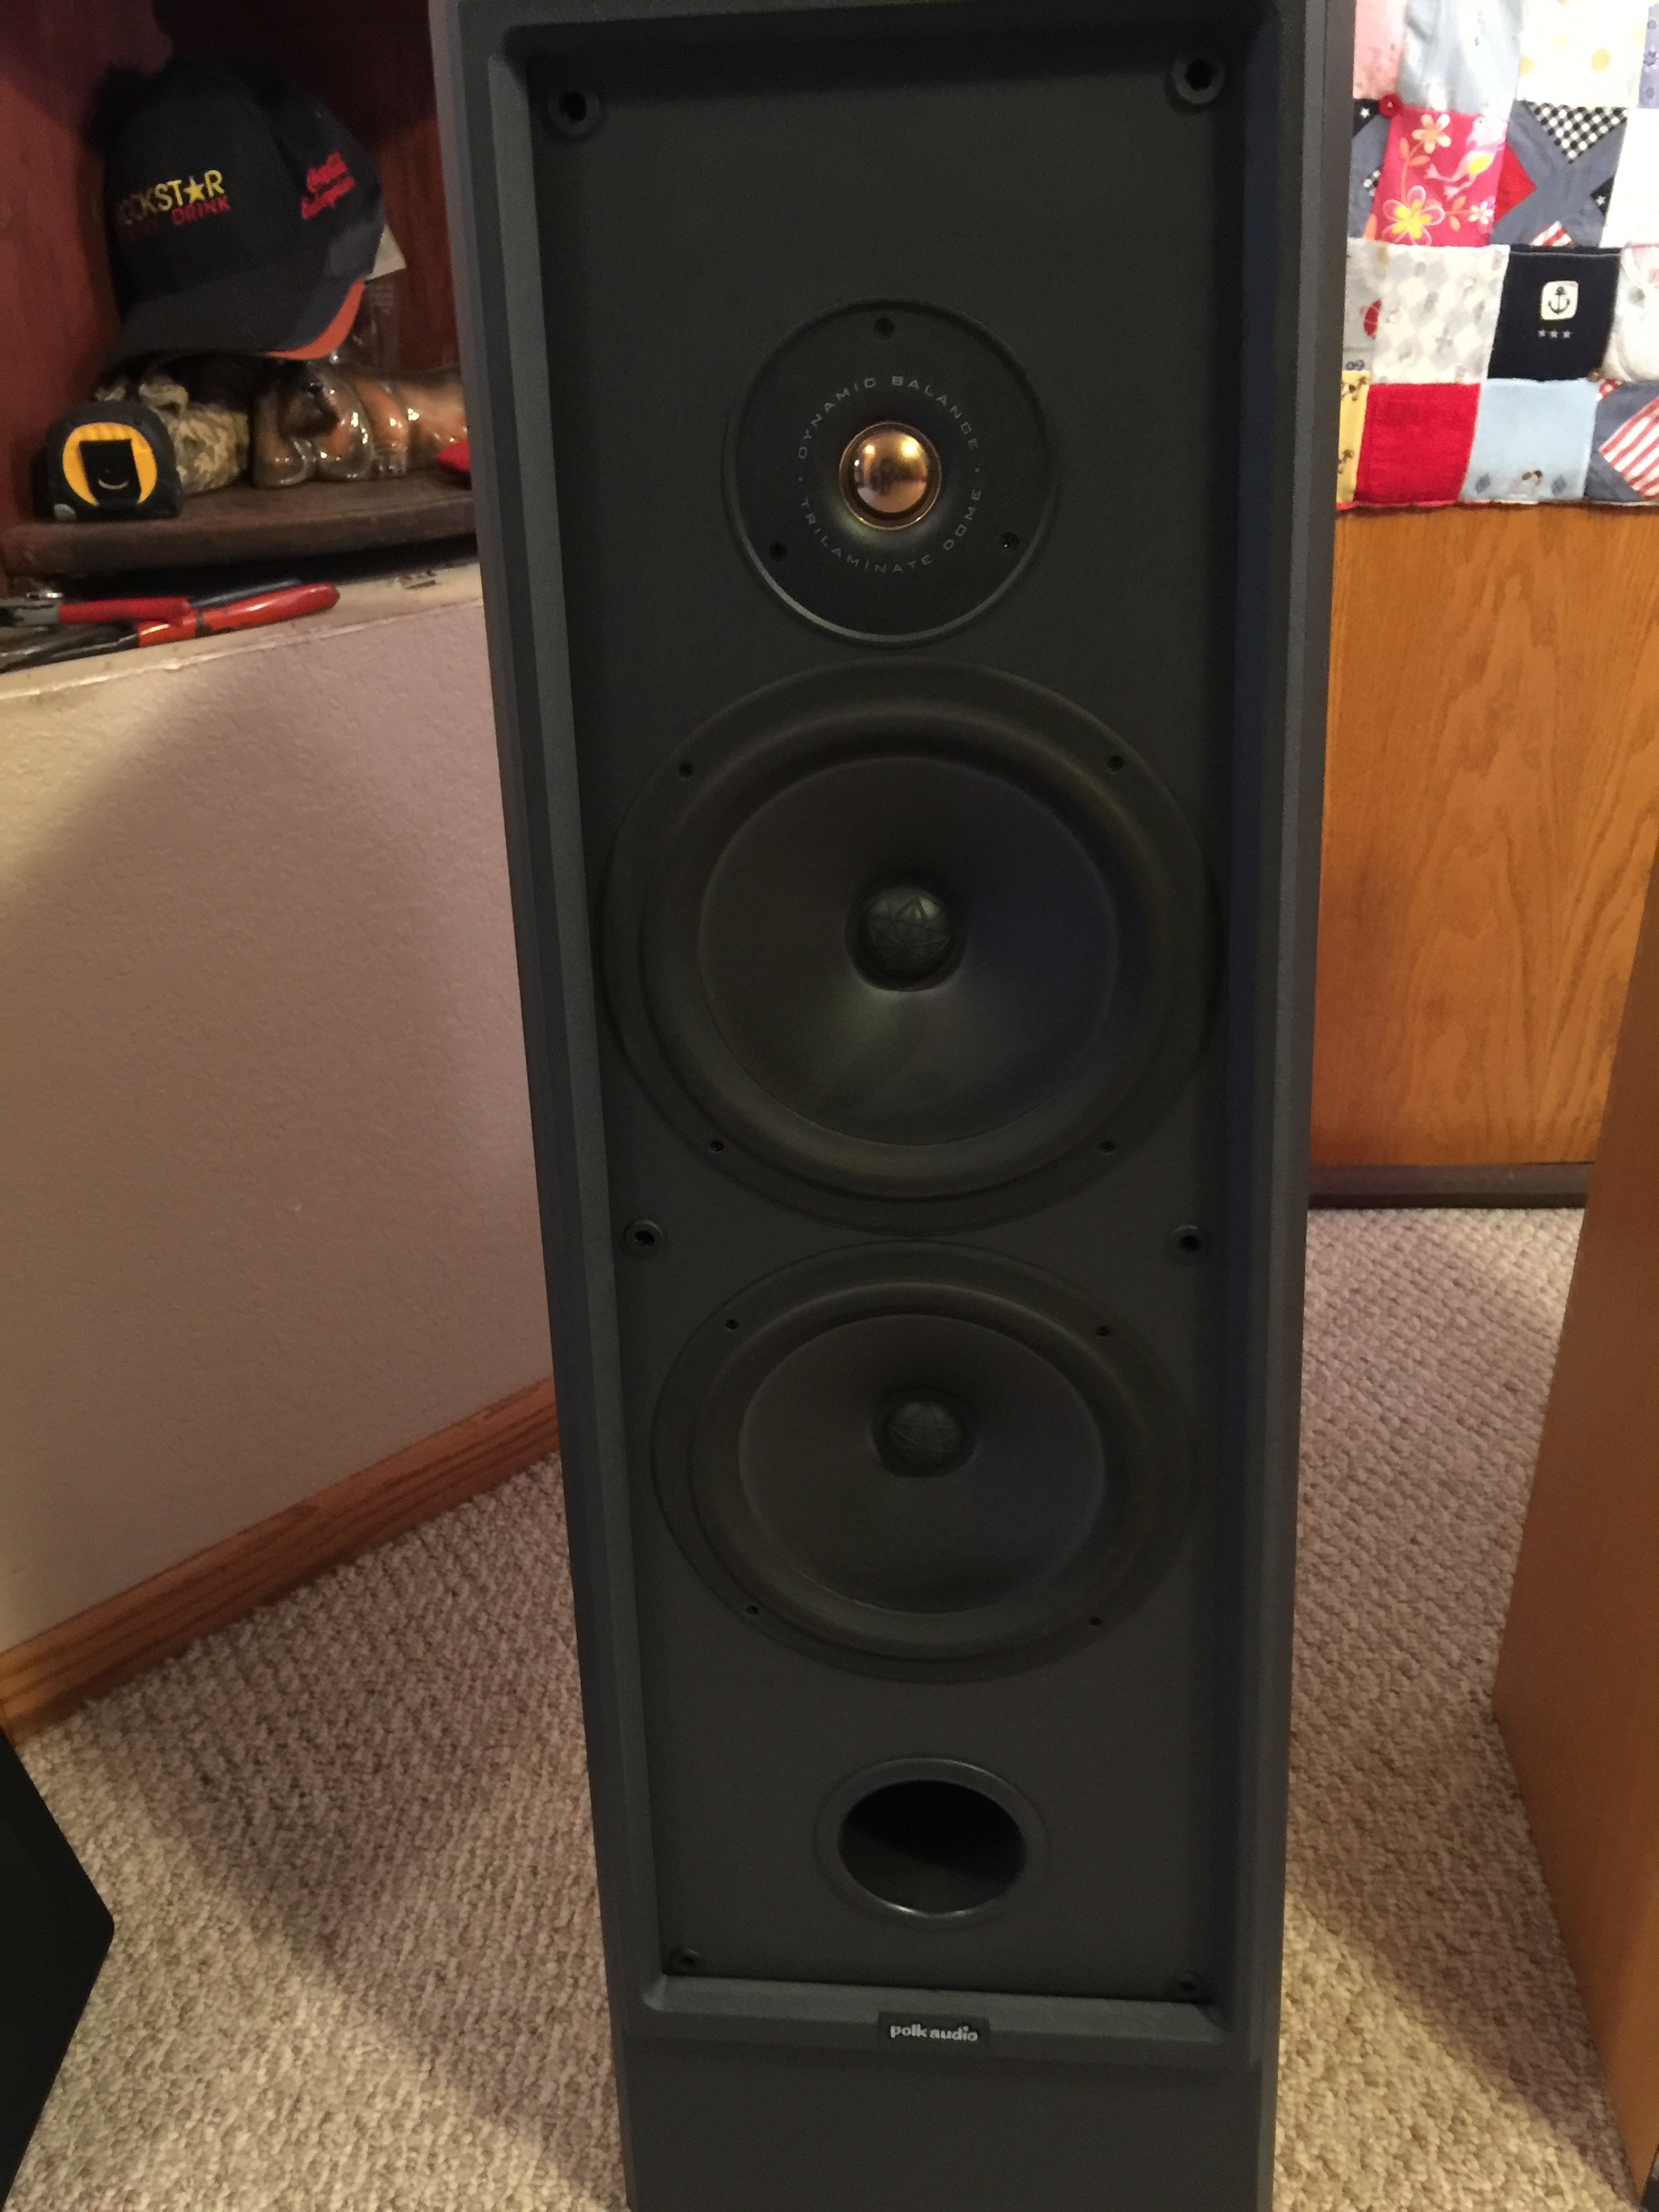 Today's awesome score @ sale — Polk Audio